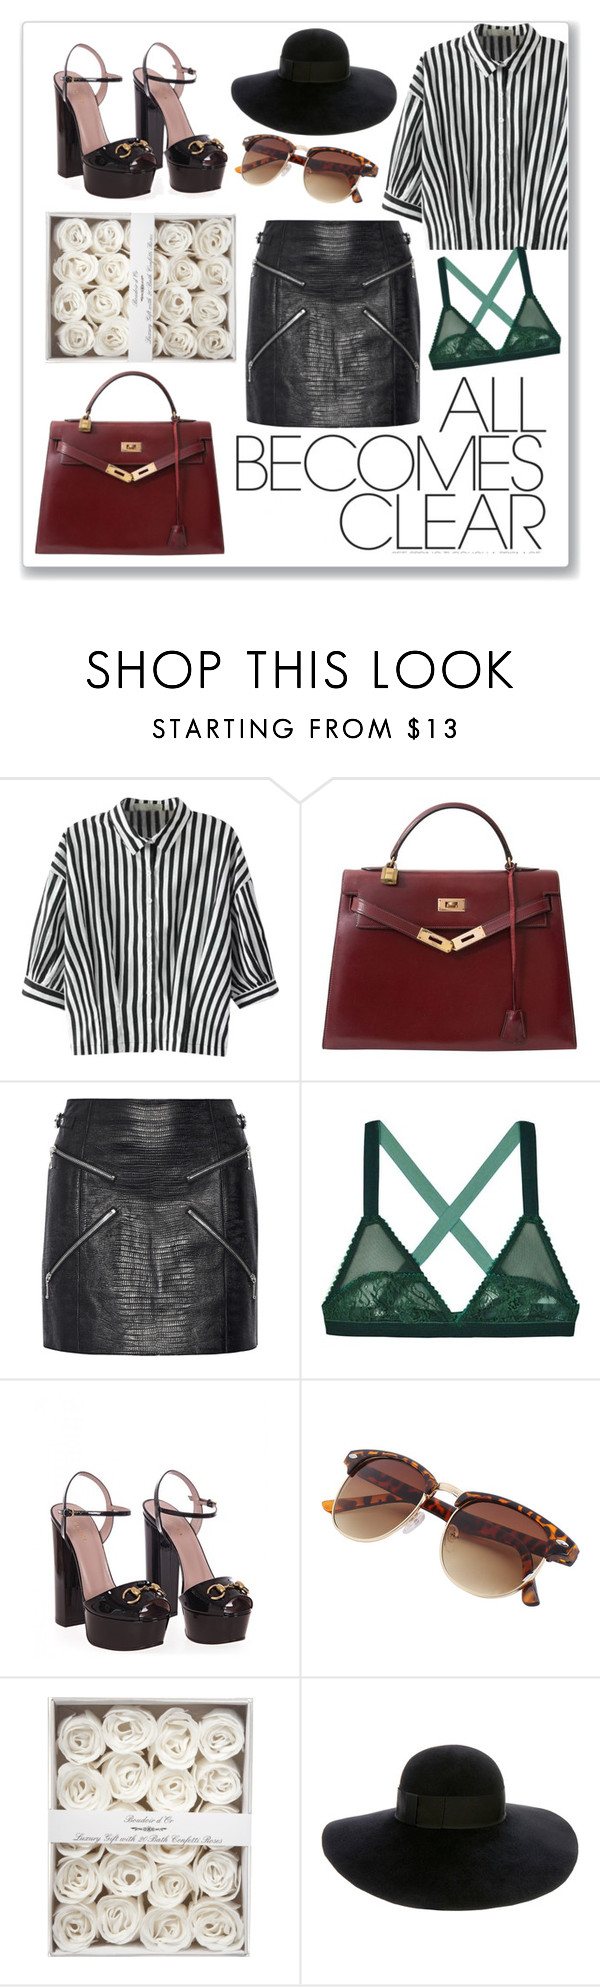 """""""#357"""" by madamenatali on Polyvore featuring Relaxfeel, Hermès, Alexander Wang, Lonely, Gucci, Eugenia Kim, gucci and girlpower"""